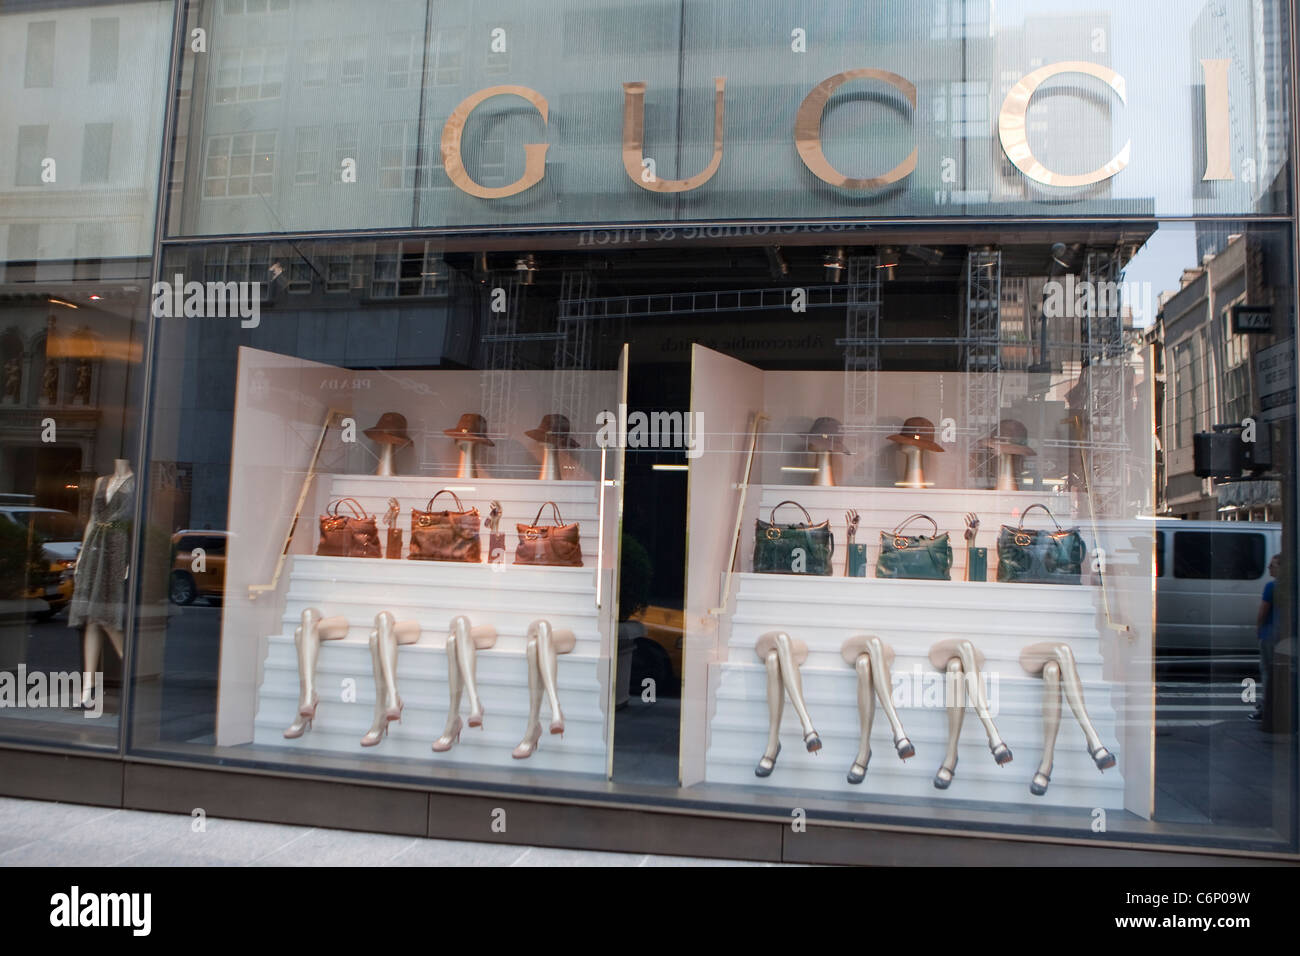 Fifth Avenue Gucci store is pictured in the New York City